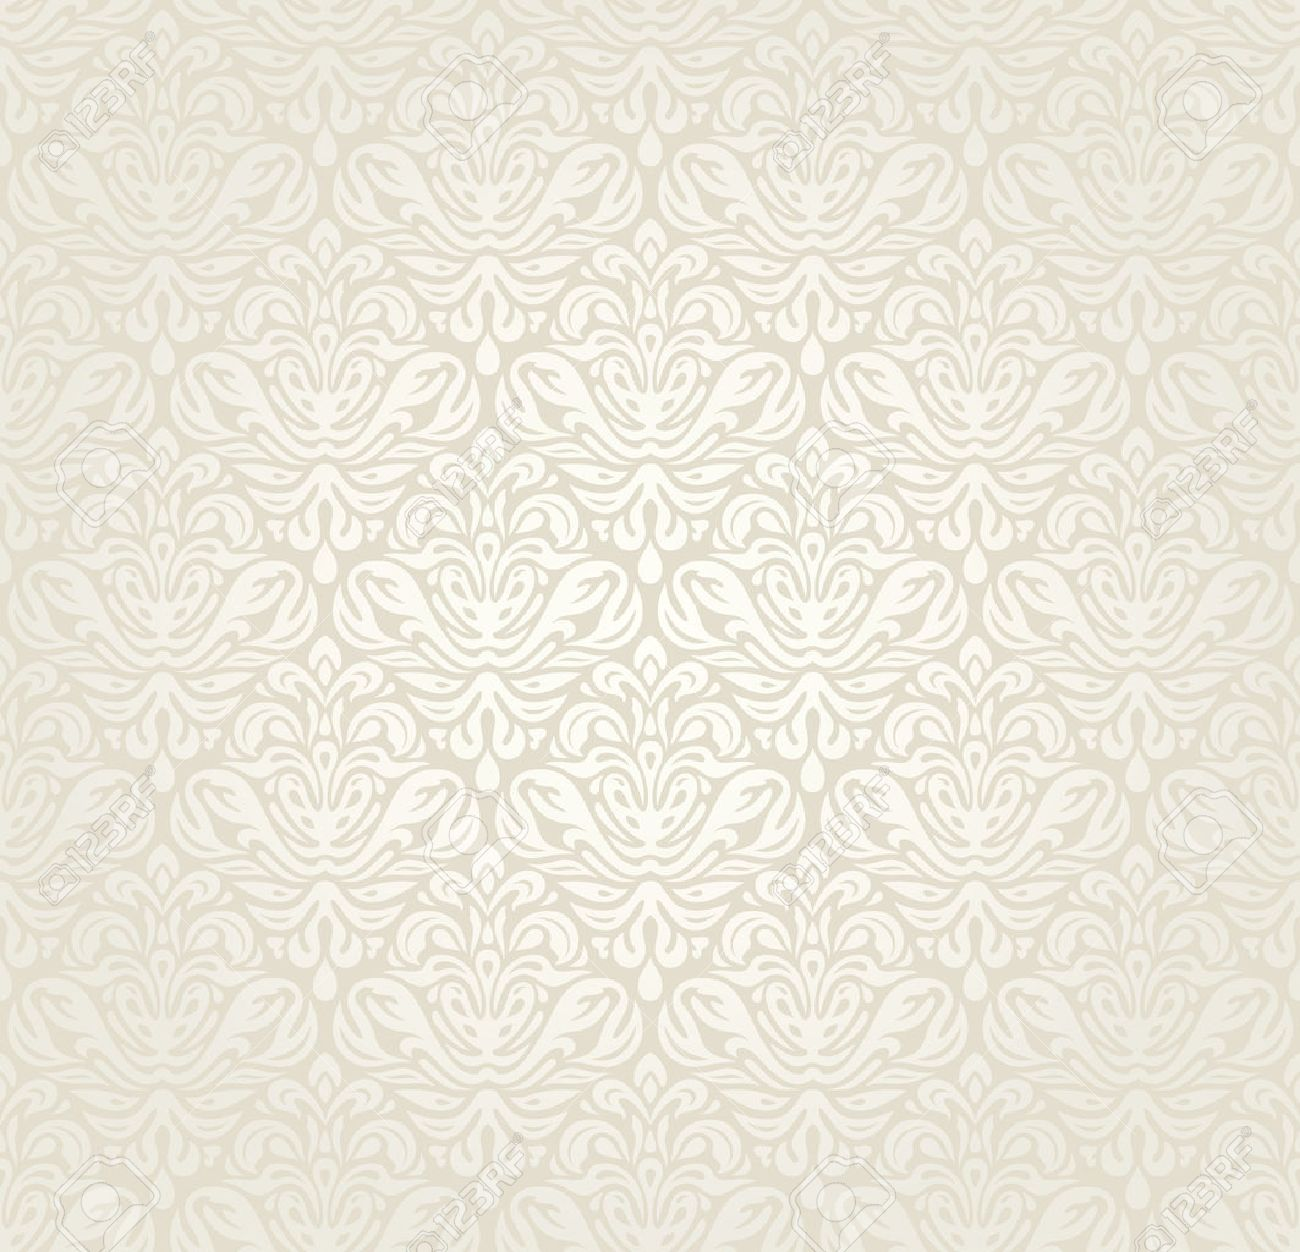 bright luxury vintage wedding seamless wallpaper background royalty free cliparts vectors and stock illustration image 32706862 bright luxury vintage wedding seamless wallpaper background